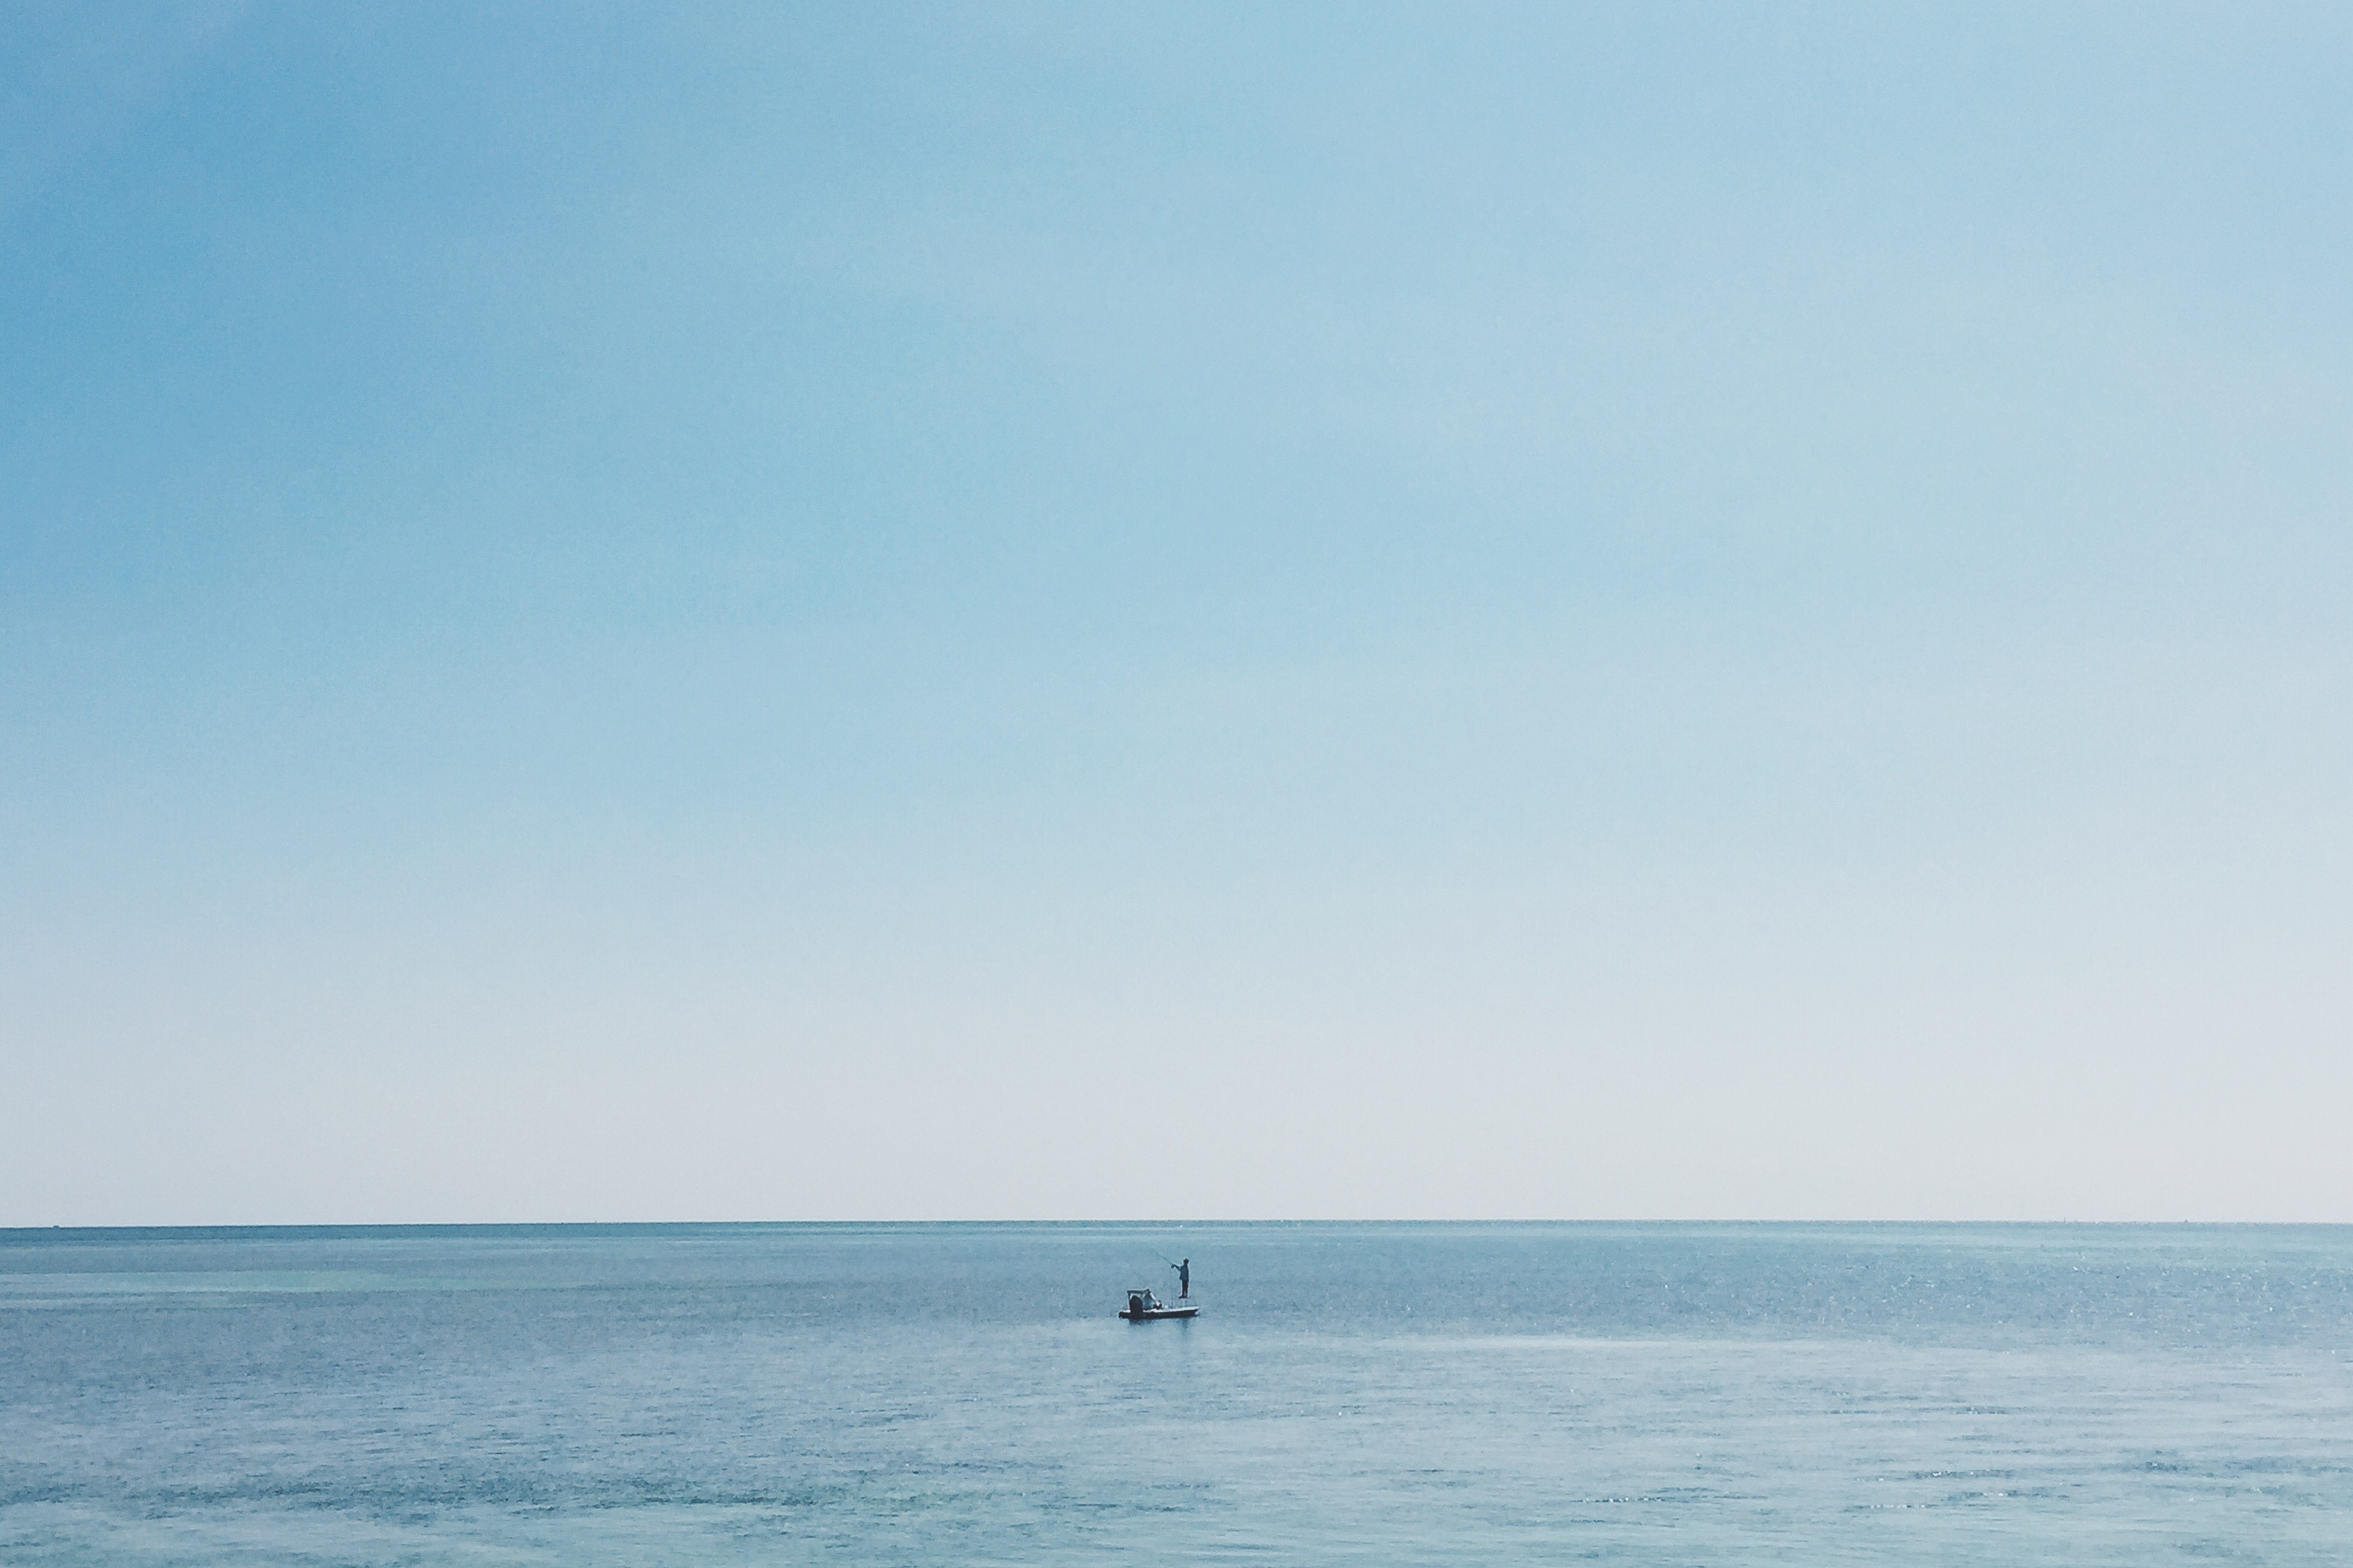 Bodies Of Water Ocean Png - 3145x2096 #water, #horizon, #surf, #lonely, #body of water, #boat ...